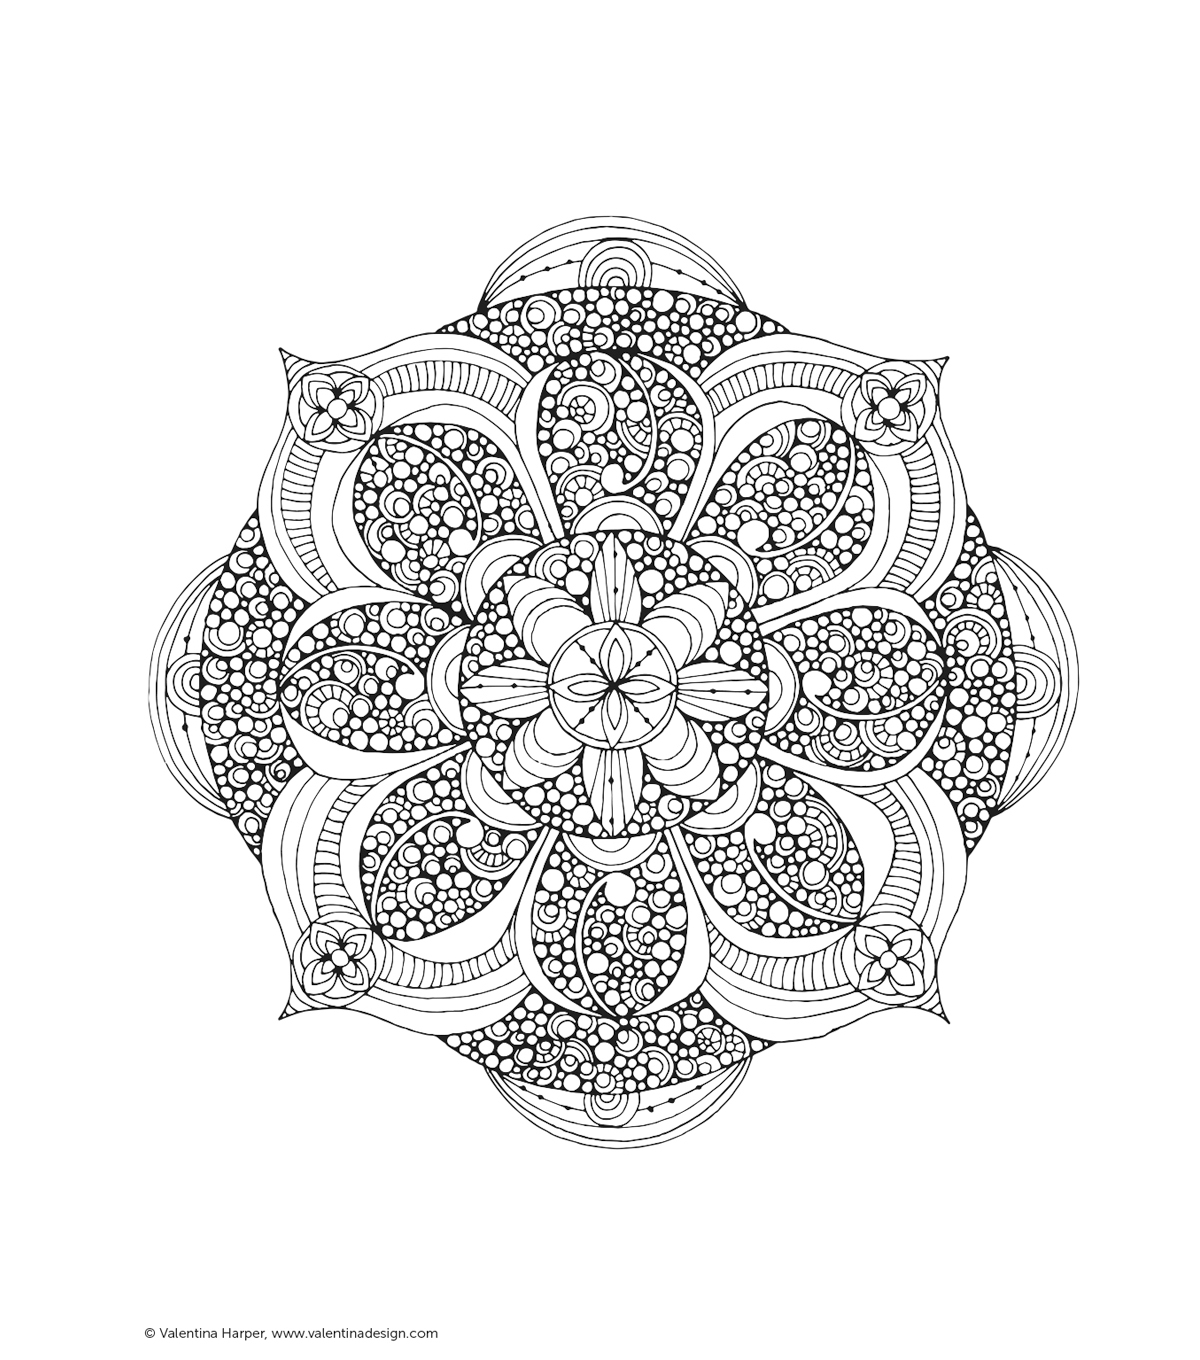 mandalas to color for adults creative coloring mandalas coloring book for adults joann adults to for mandalas color